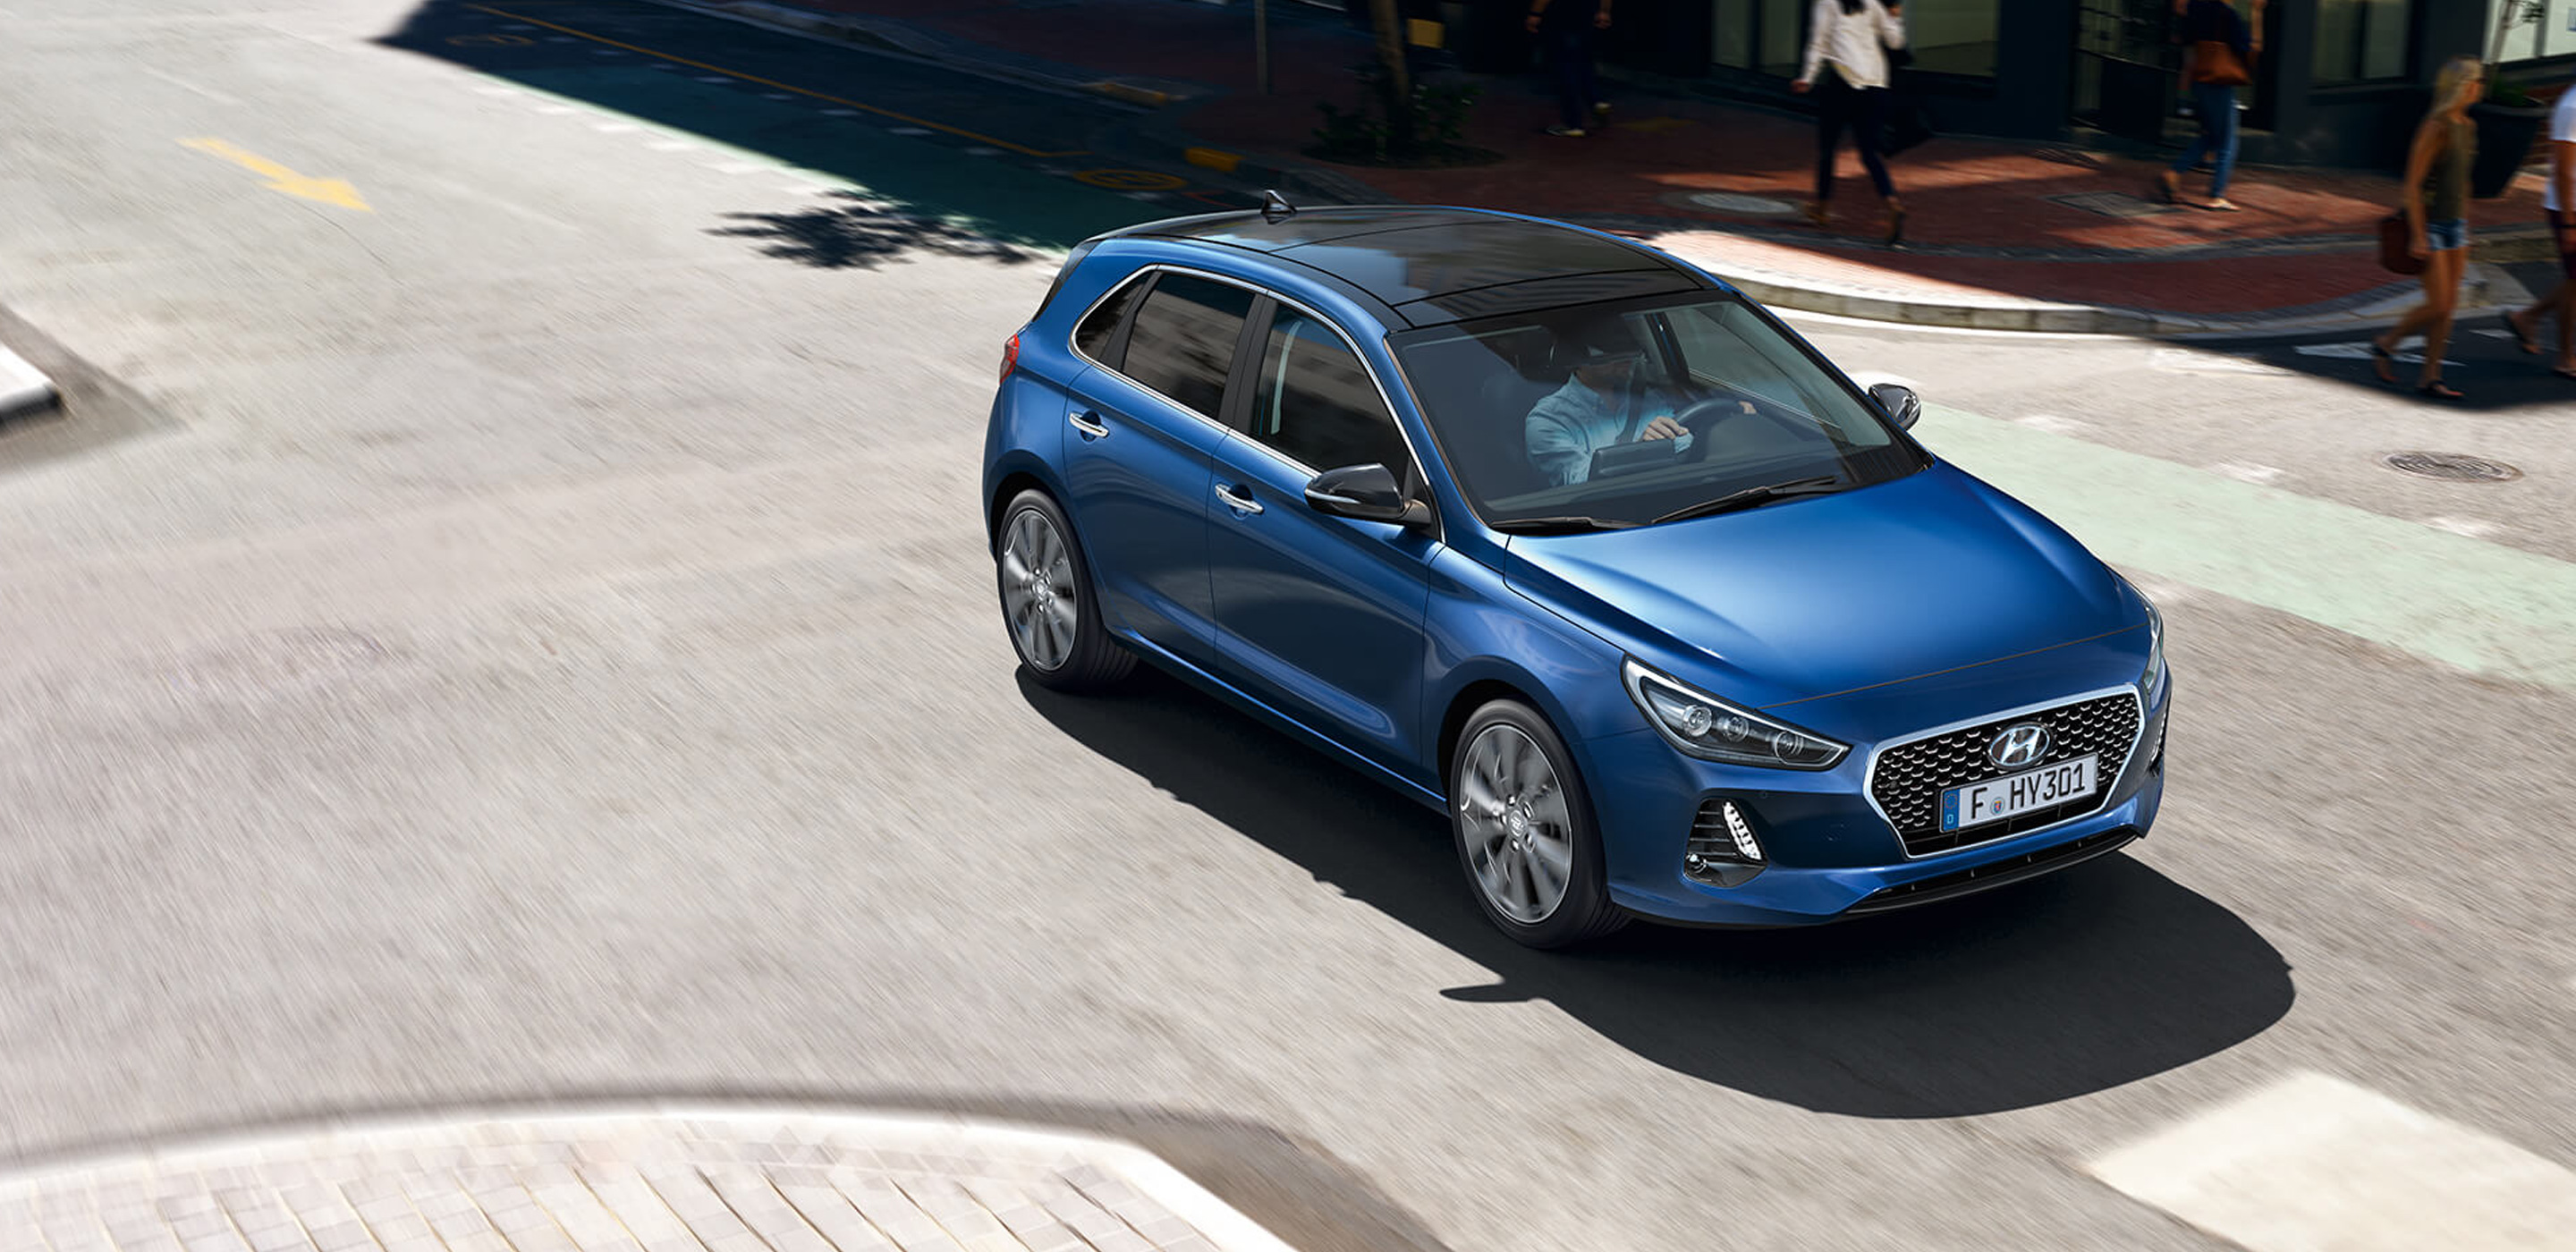 Up to £5,000 off with Hyundai's new scrappage scheme